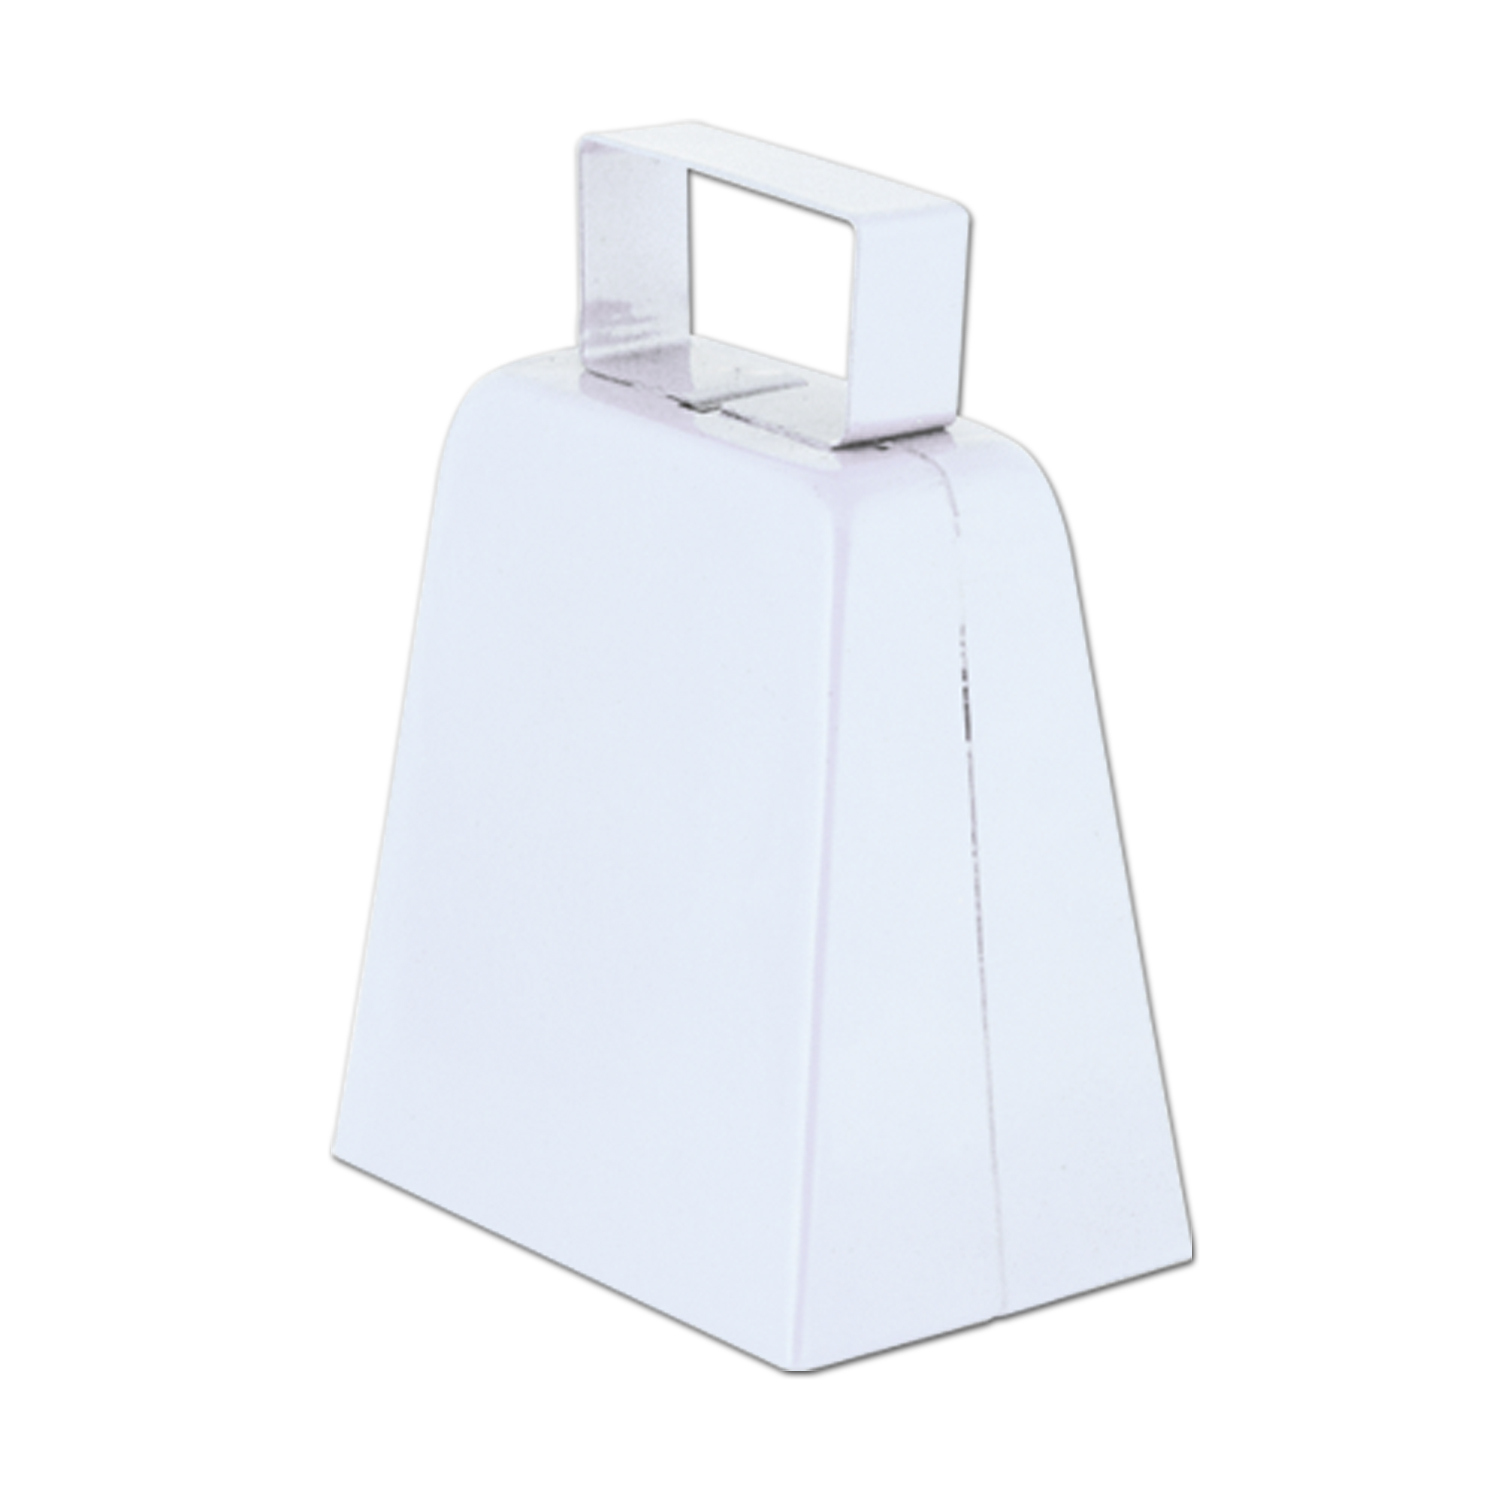 Cowbells (Pack of 12) white, cowbell, football, superbowl, playoffs, tailgating, noisemaker, party